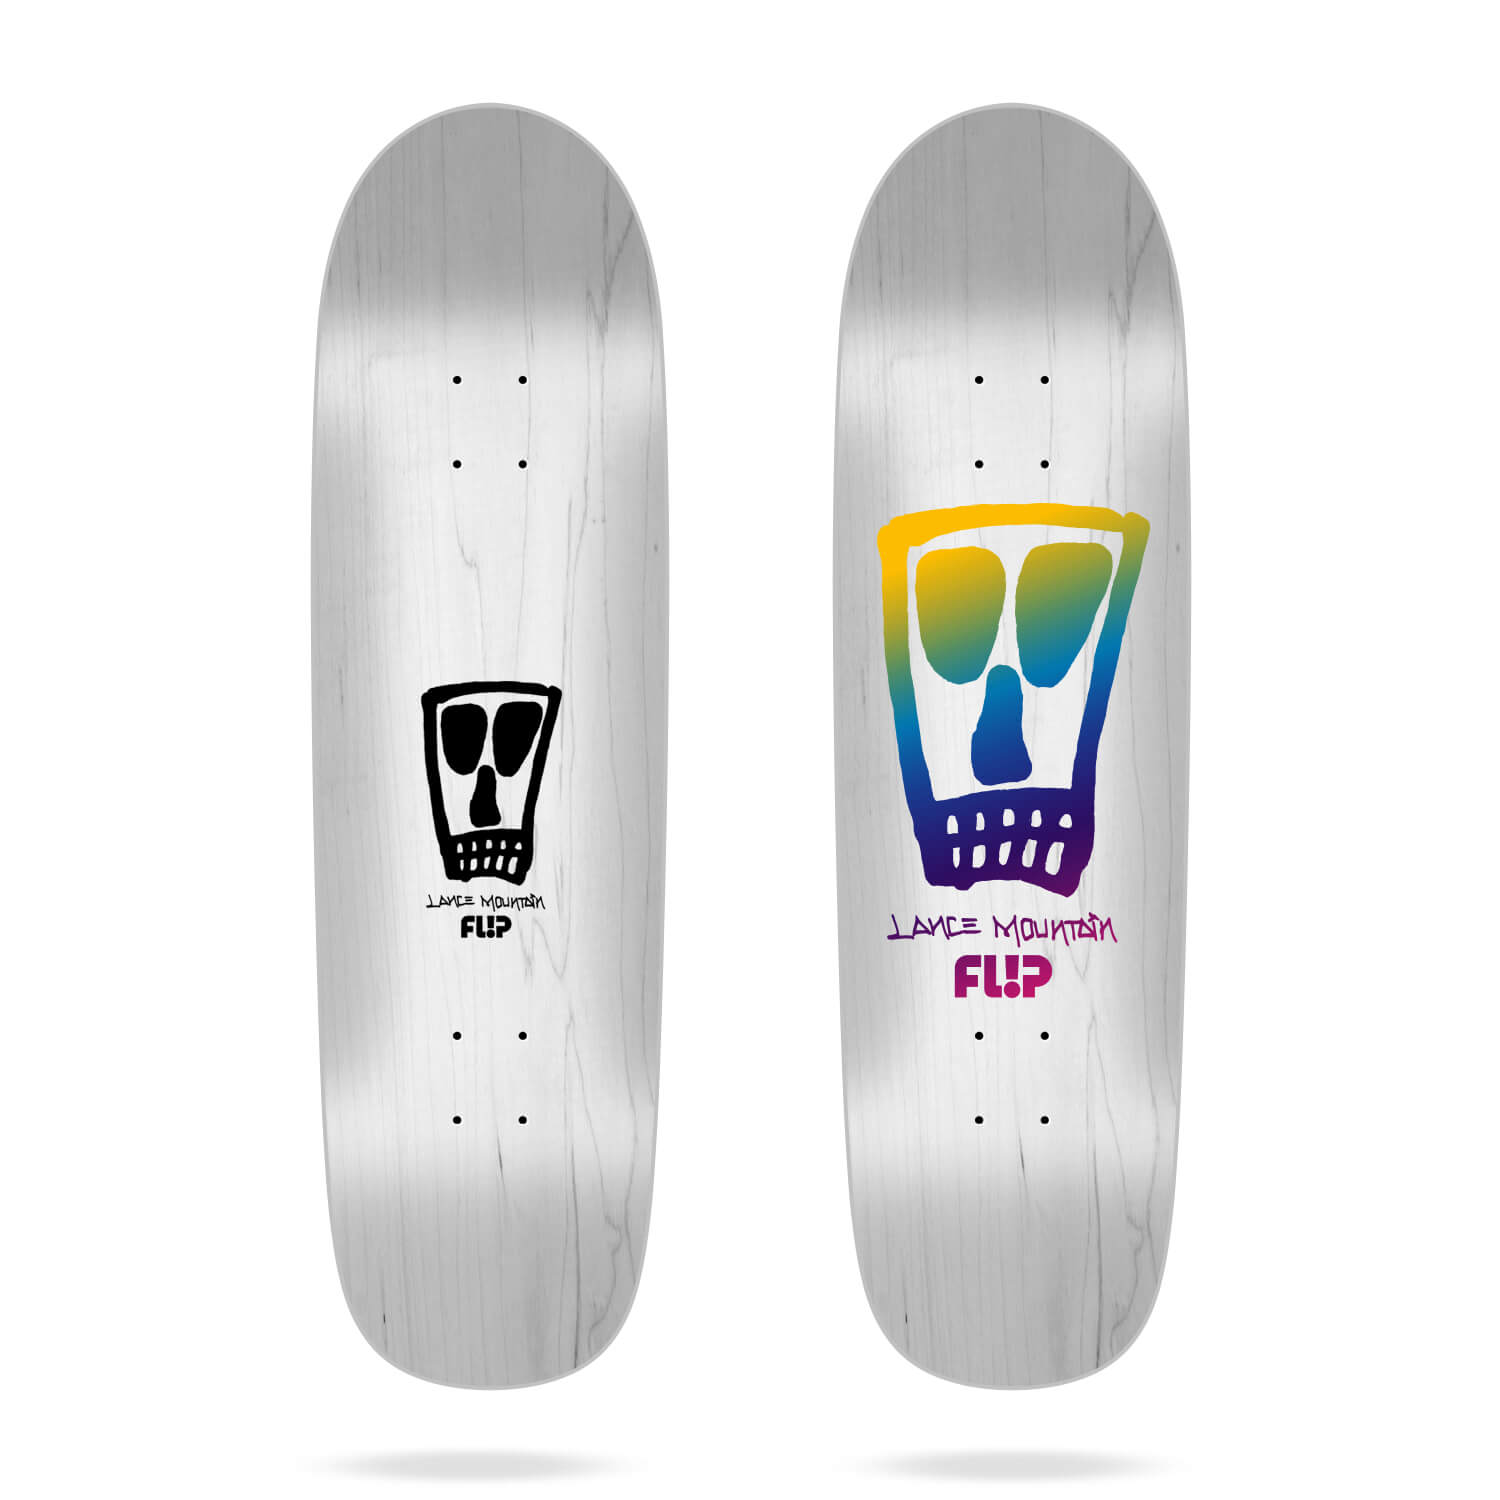 "Flip Mountain Vato 8.75"" deck"